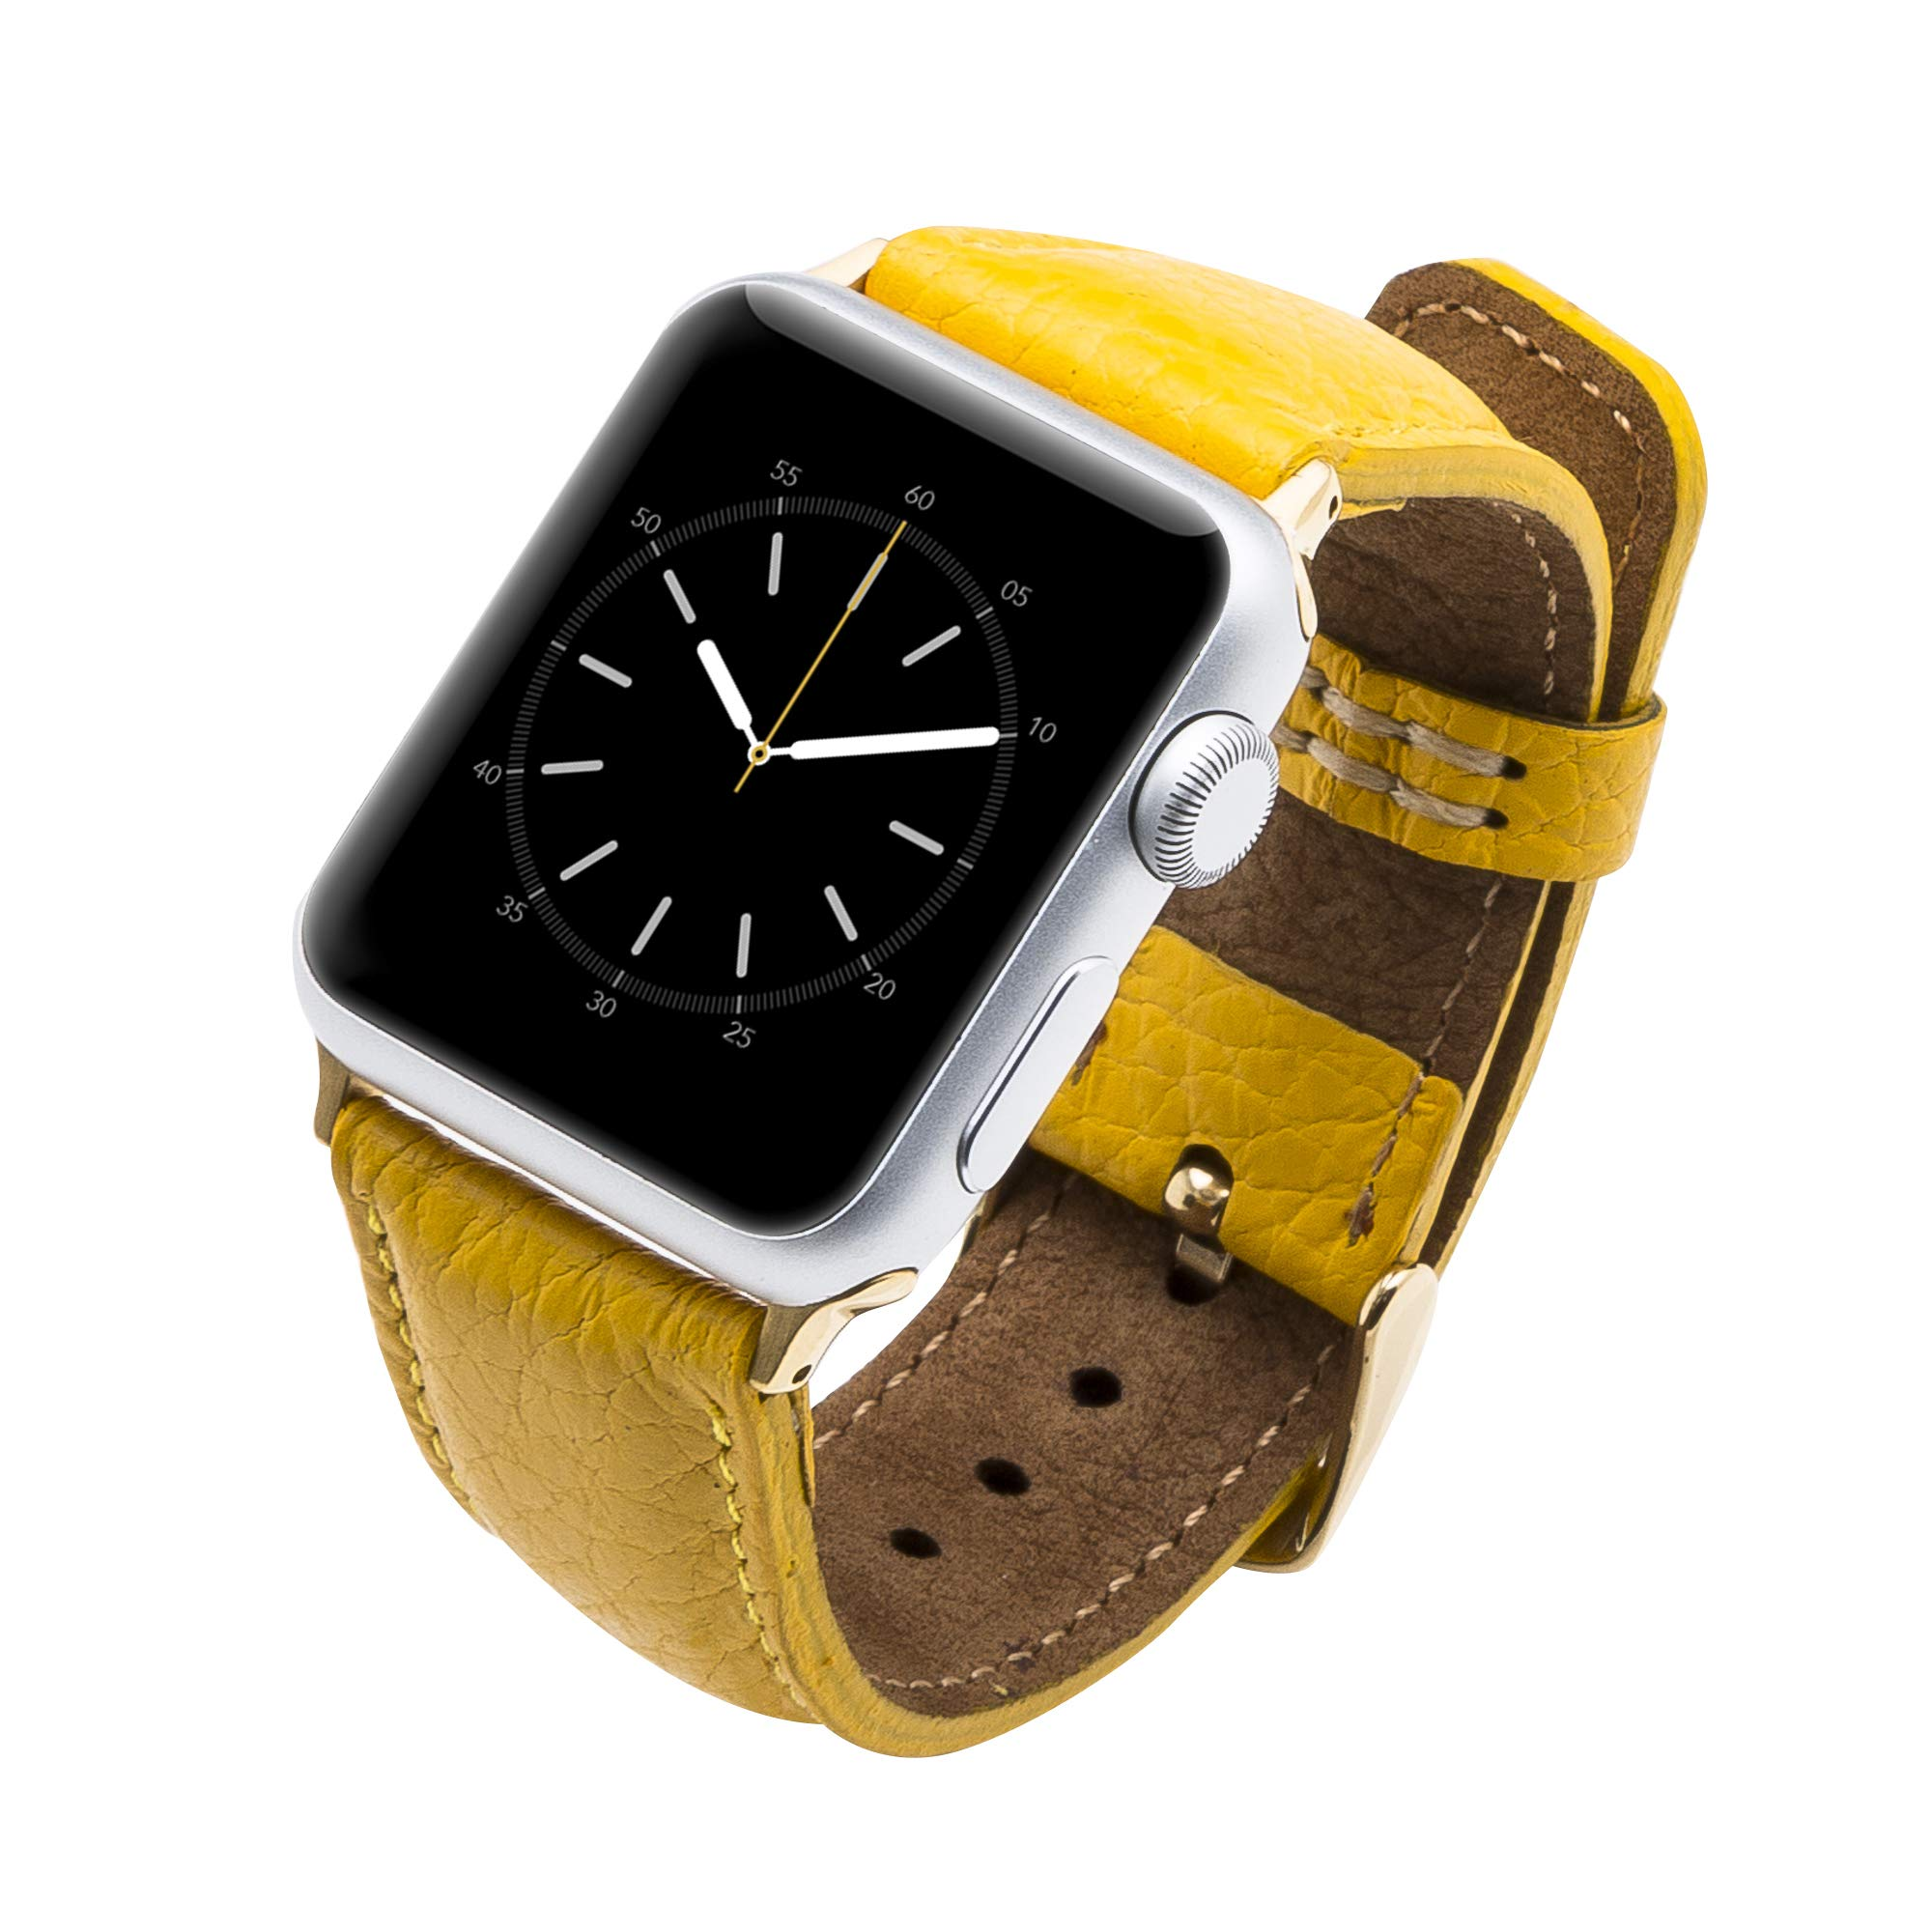 Venito Tuscany Handmade Premium Leather Watch Band Strap Compatible with The Newest Apple Watch iwatch Series 5 as Well as Series 1,2,3, 4 (Yellow w/Gold Stainless Steel Hardware, 38-40mm) by Venito